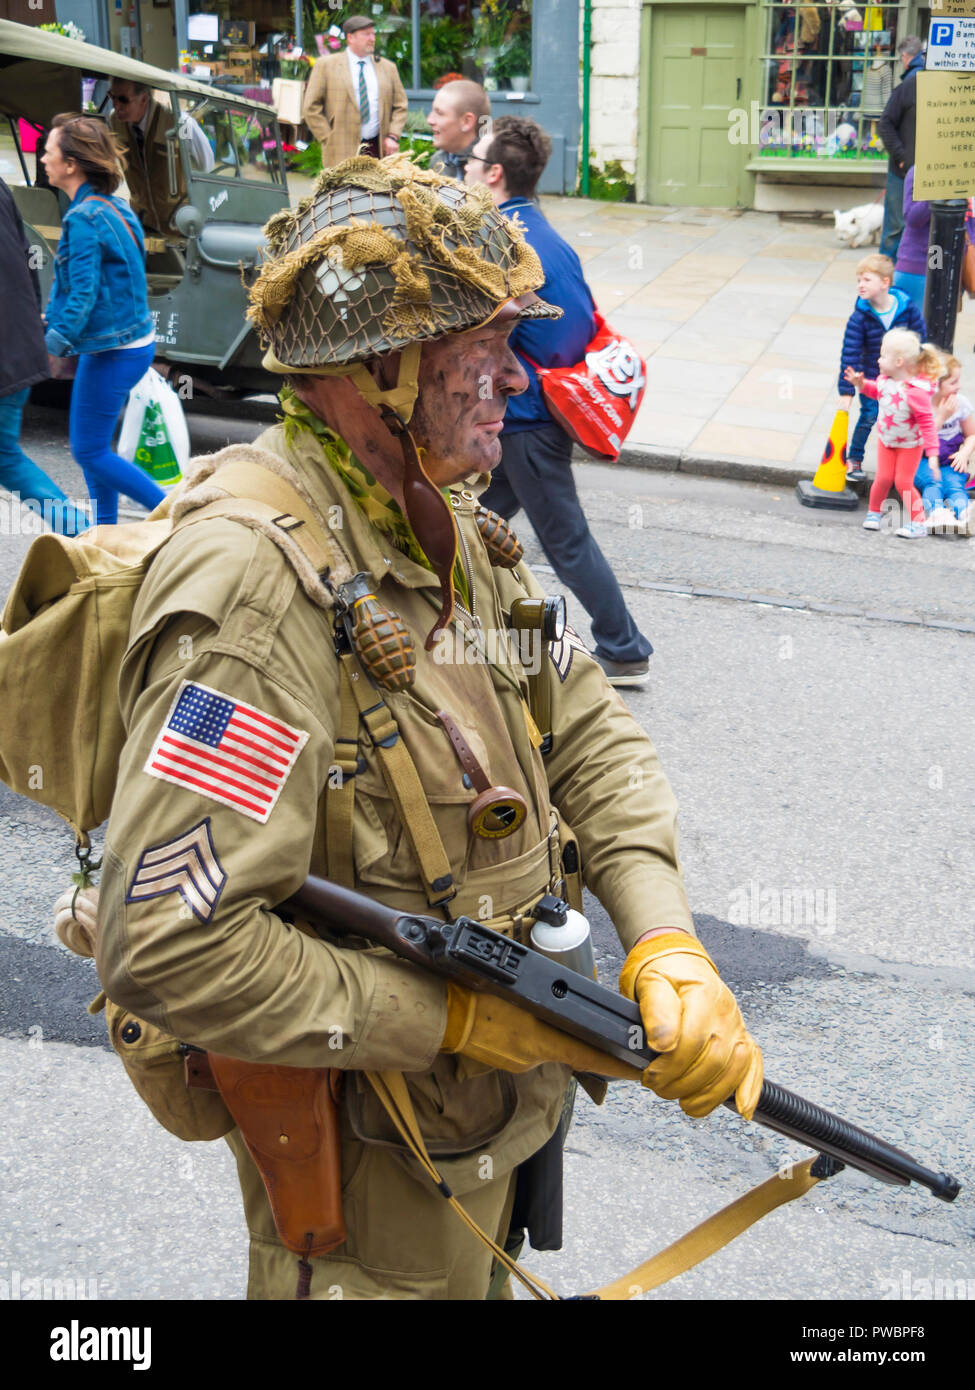 October 2018 a man dressed as an American GI infantryman with gun and grenades in World War two at an annual re-enactment in Pckering North Yorkshire - Stock Image